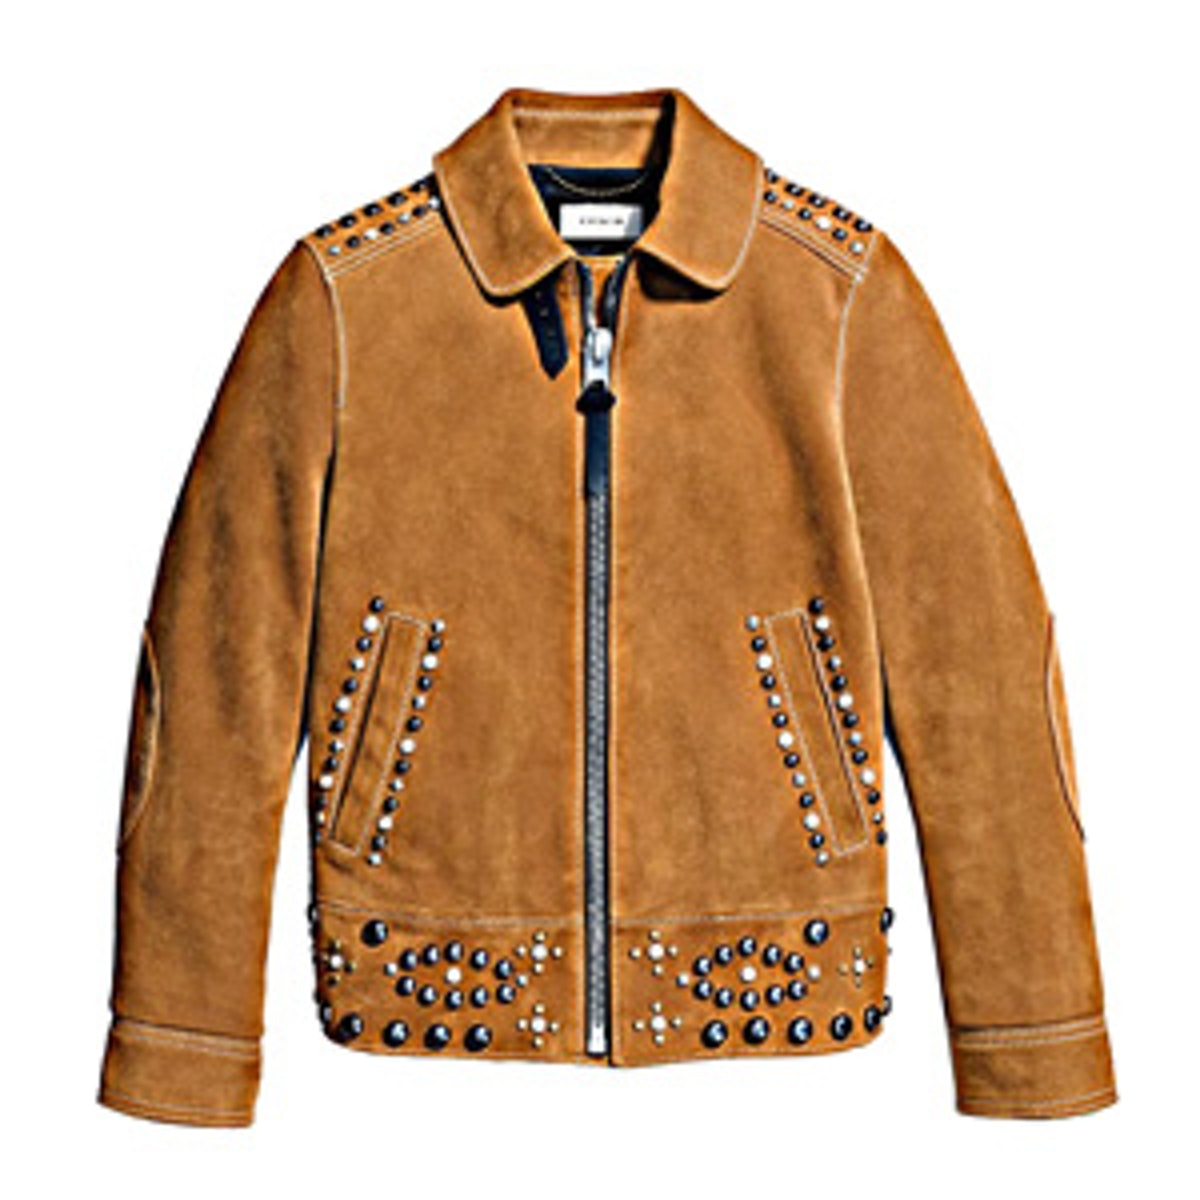 Suede Jacket With Studs